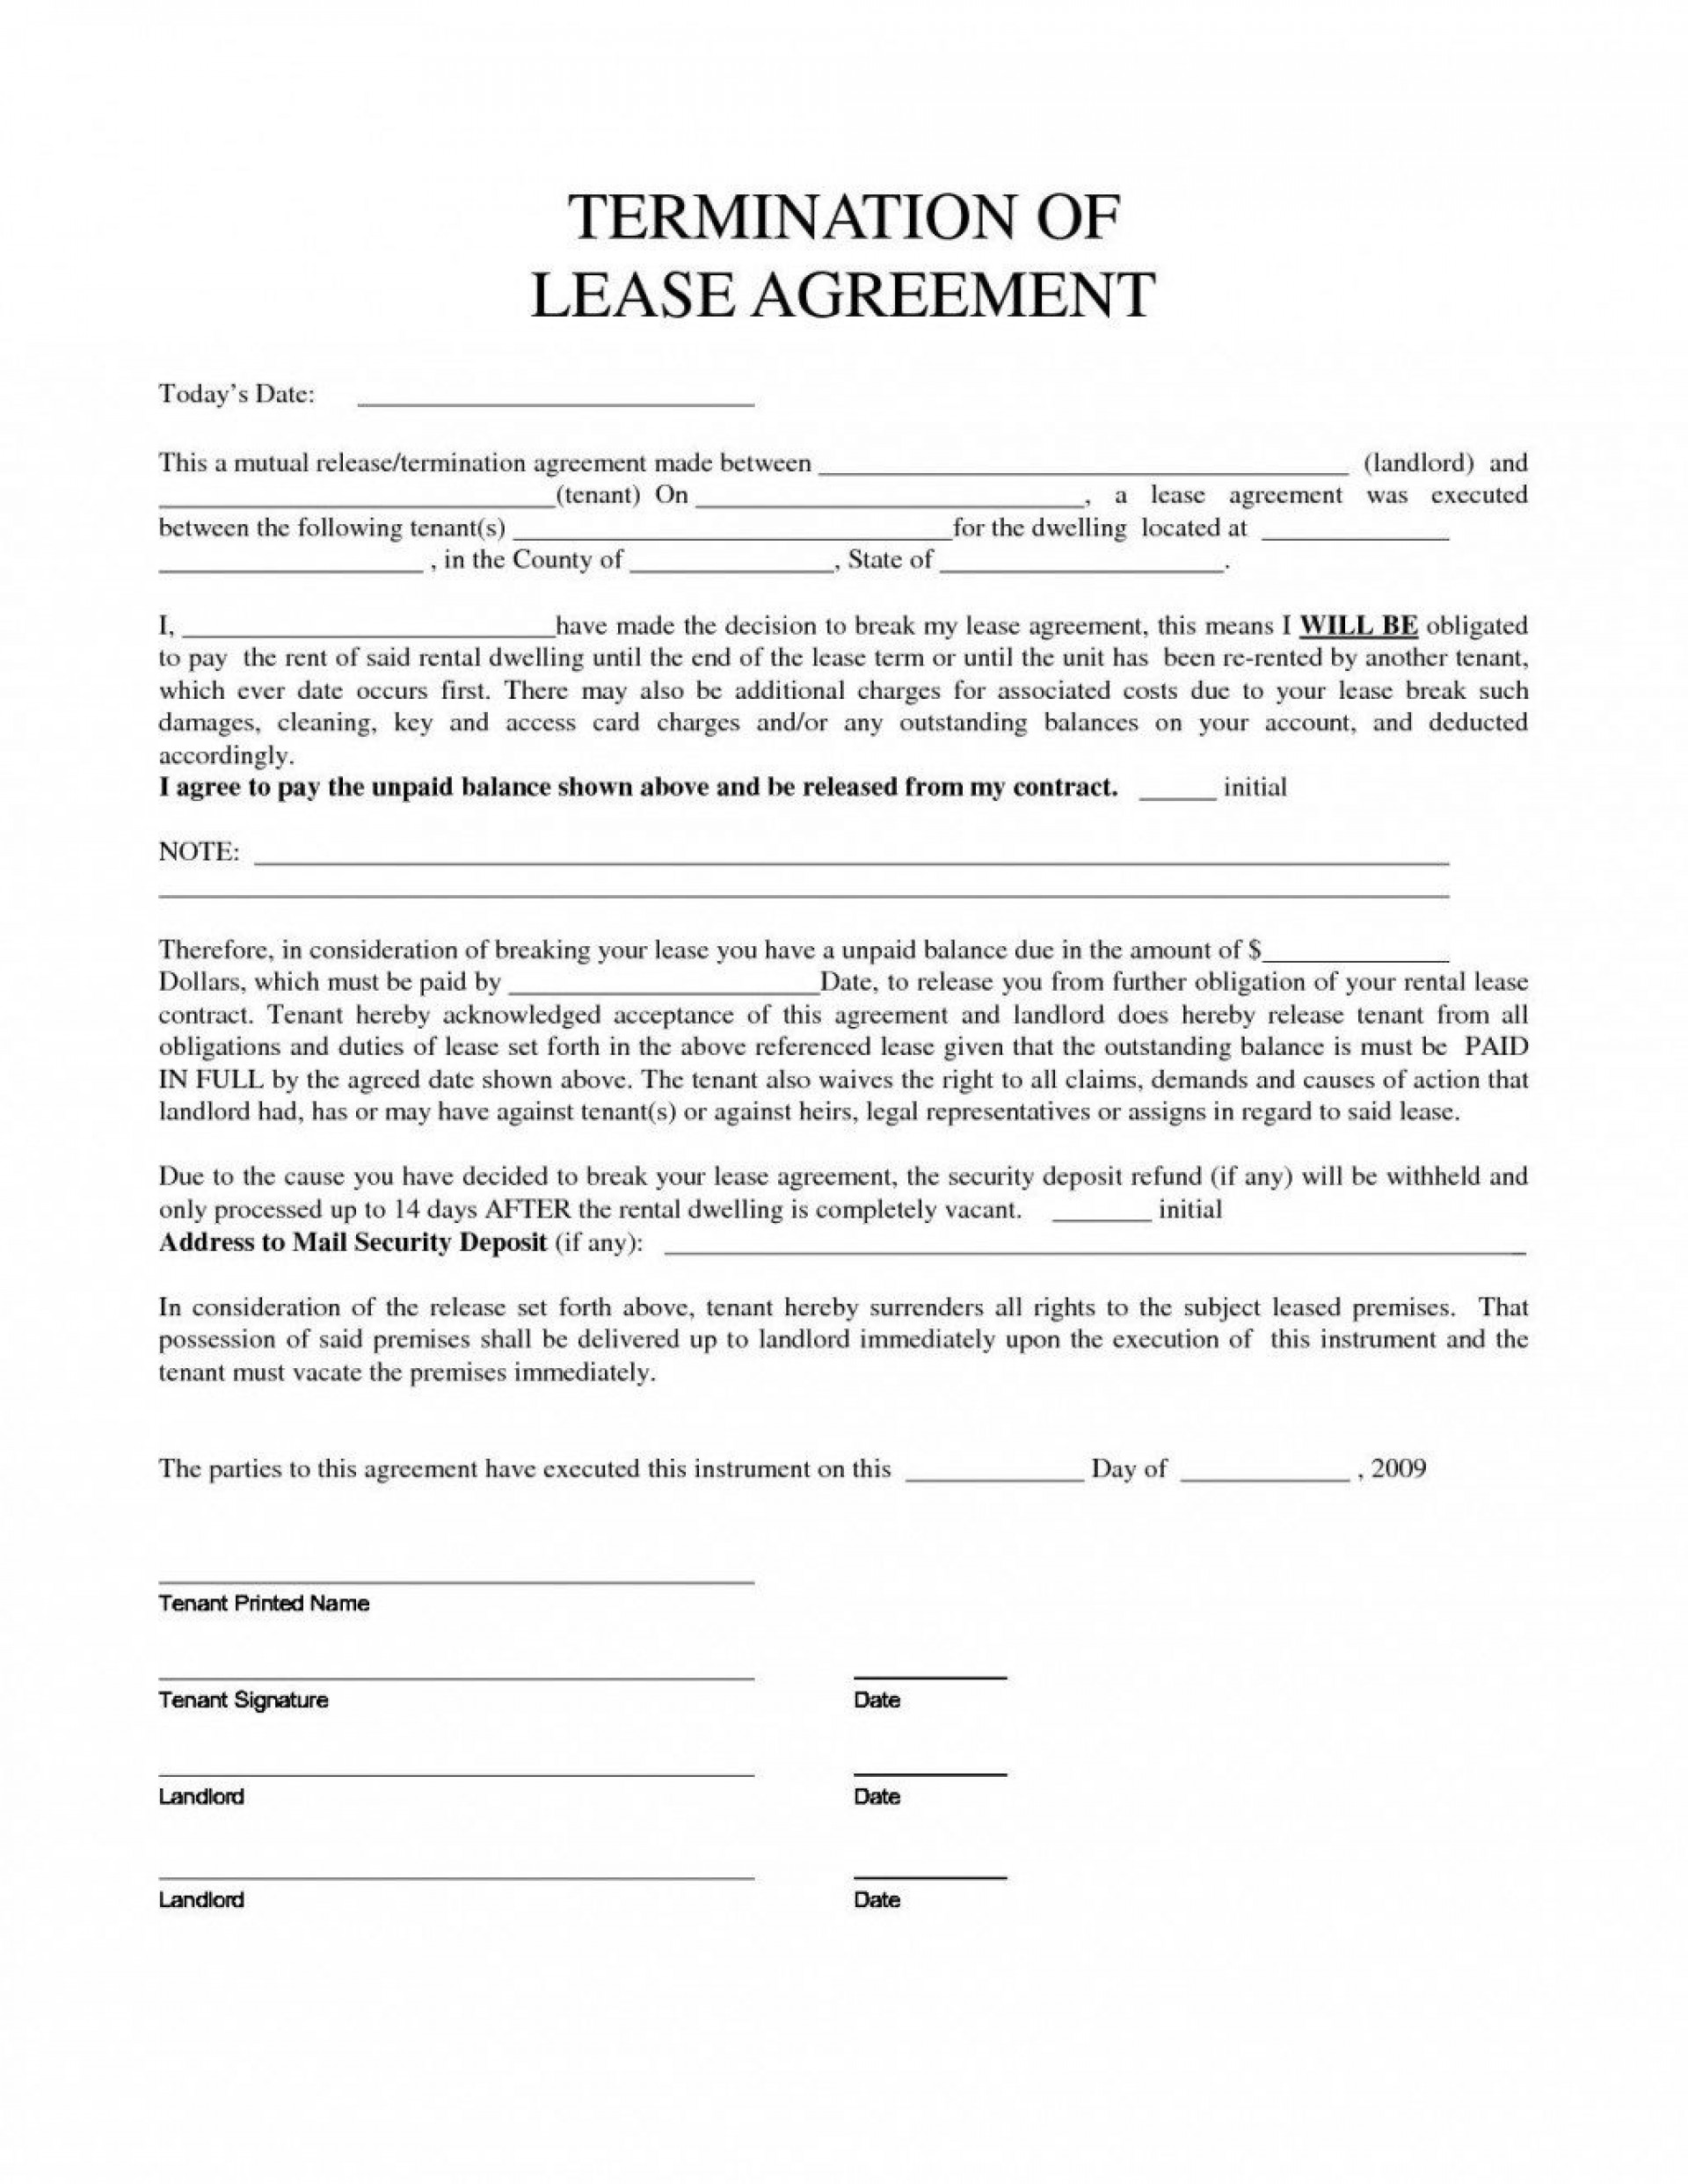 007 Stirring Template Letter To Terminate Rental Agreement High Def  End Tenancy For Landlord Ending1920